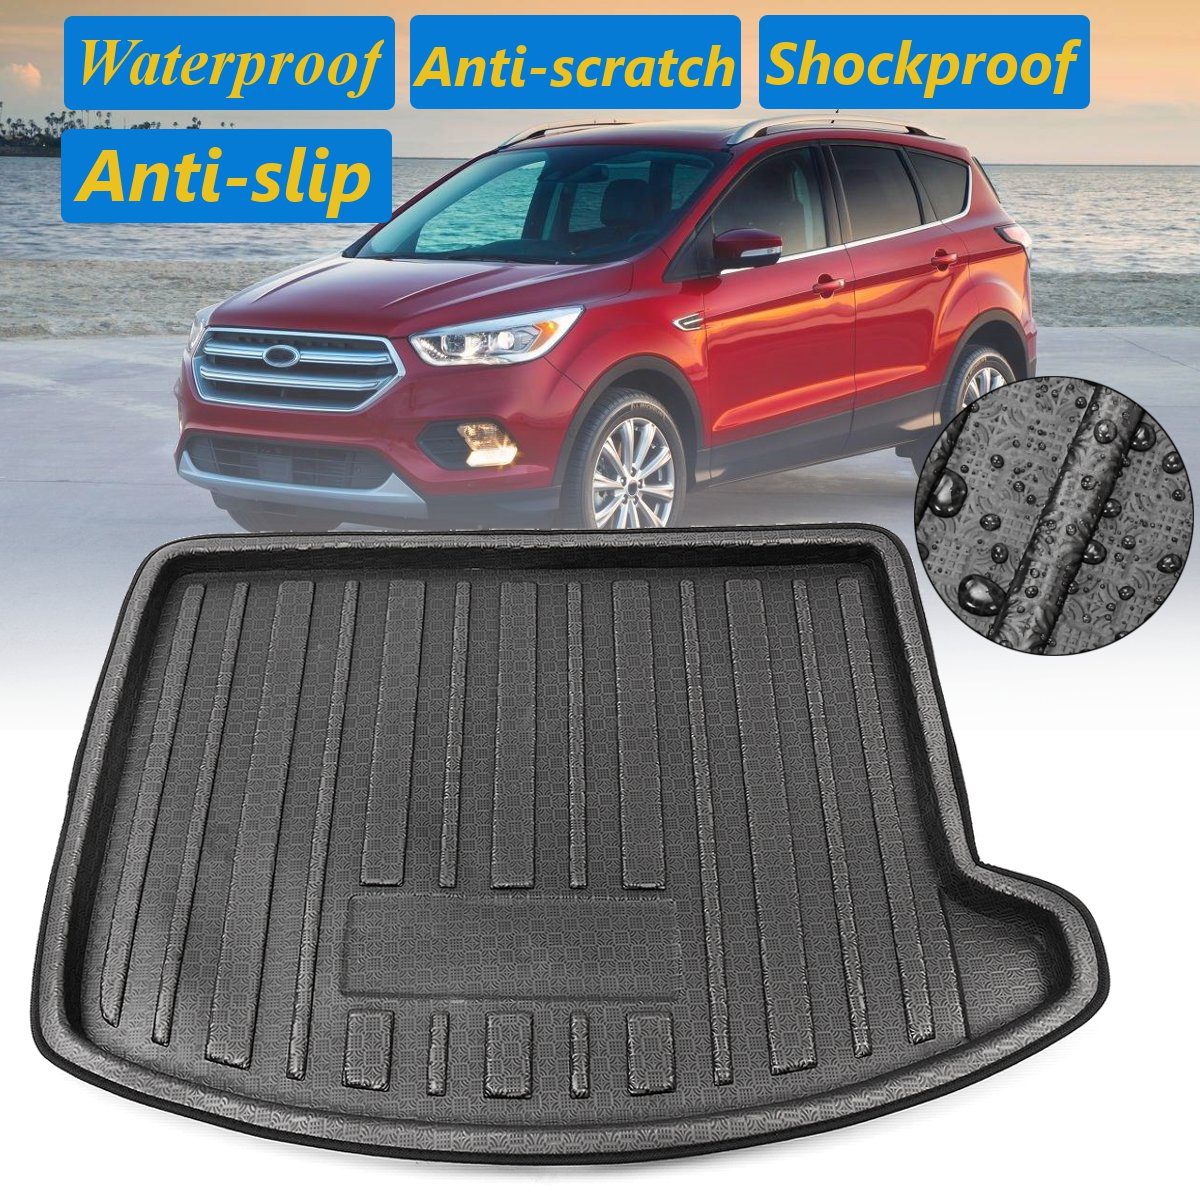 For Ford Escape Kuga 2013 2014 2015 2016 2017 2018 Cargo Liner 1 Pcs PE Rear Trunk  Floor Tray Carpet Boot Mat Mud Kick OverlayFor Ford Escape Kuga 2013 2014 2015 2016 2017 2018 Cargo Liner 1 Pcs PE Rear Trunk  Floor Tray Carpet Boot Mat Mud Kick Overlay